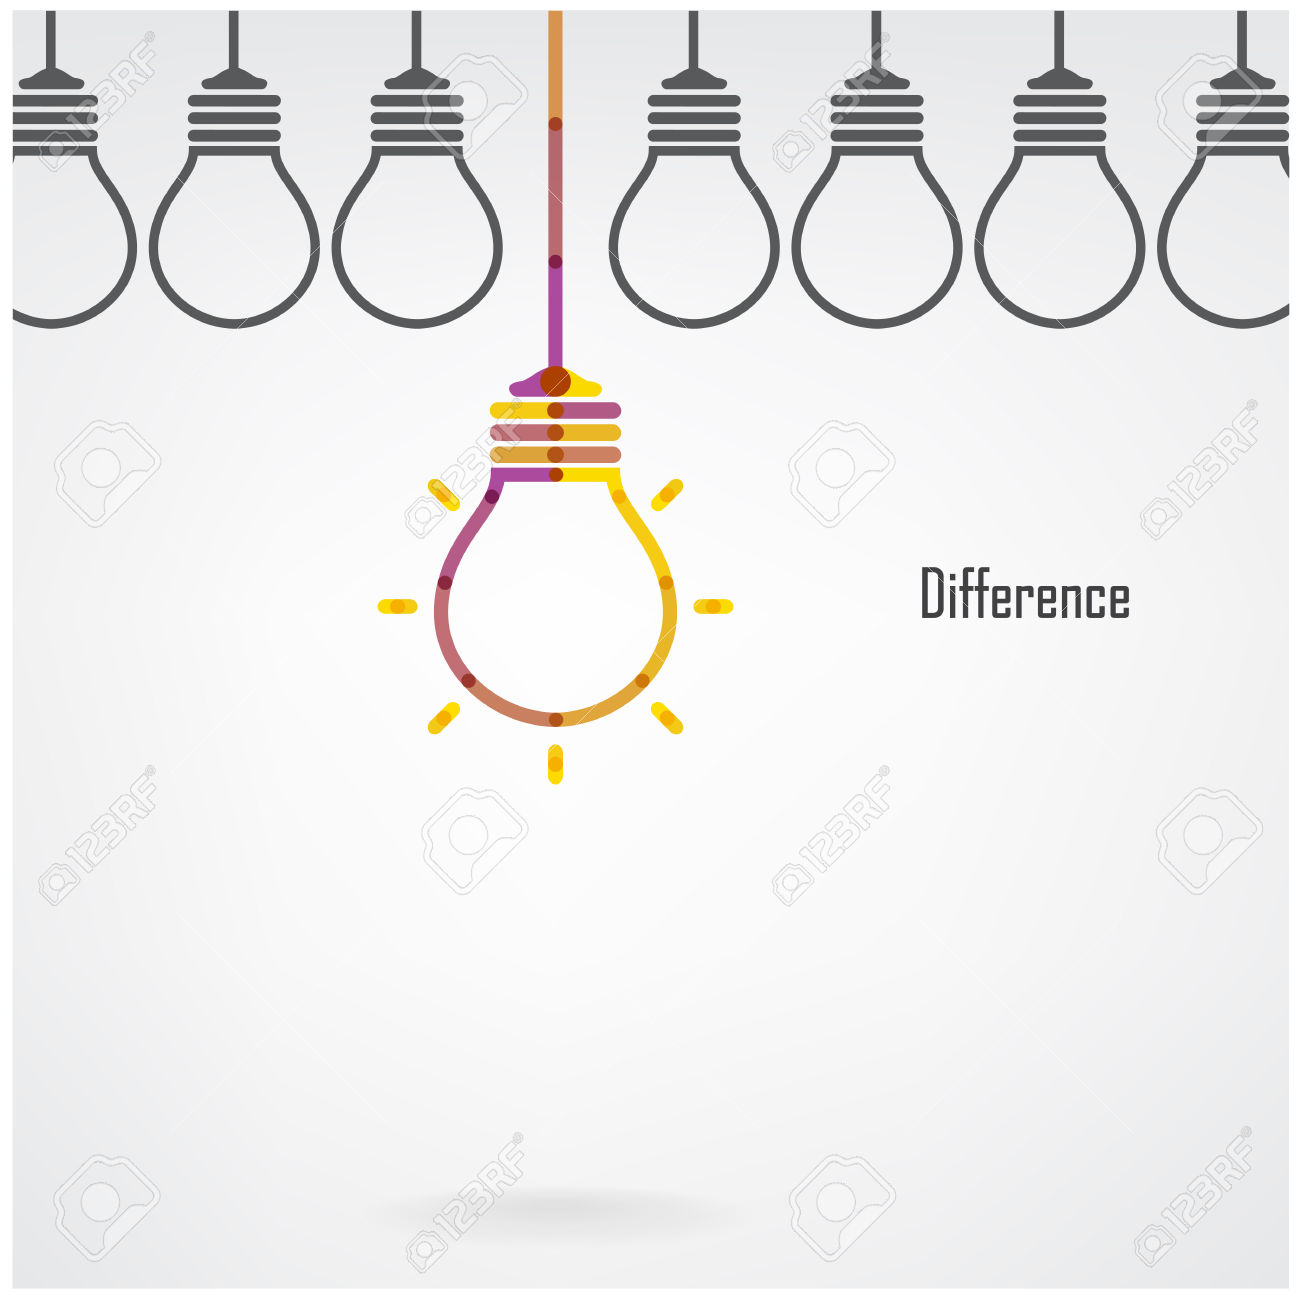 Creative Light Bulb Difference Idea Concept Background, Design.